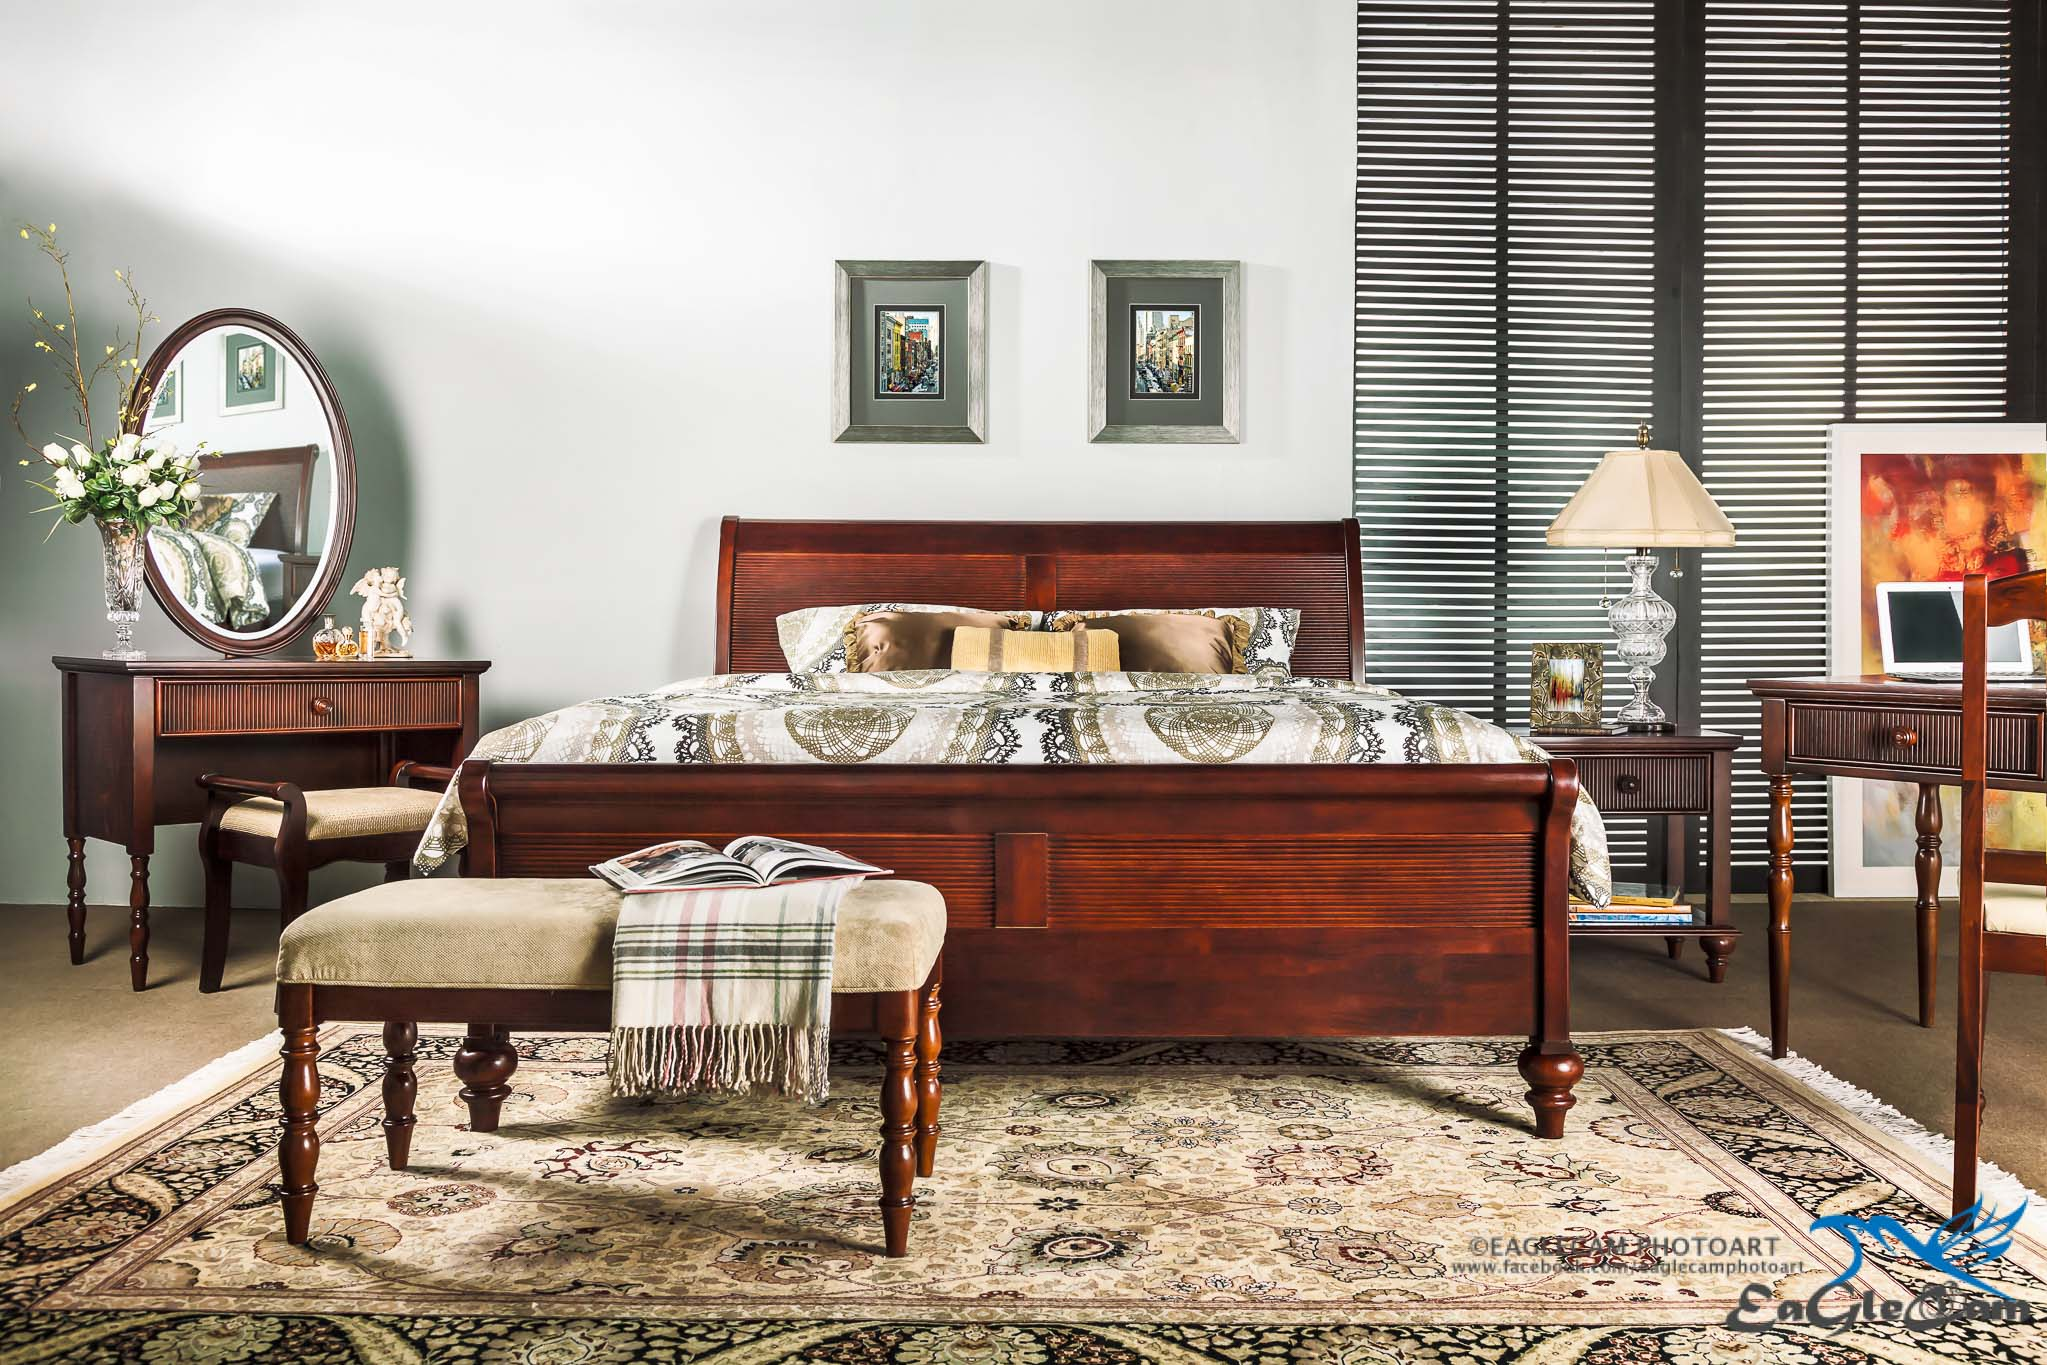 Furniture Photography_20